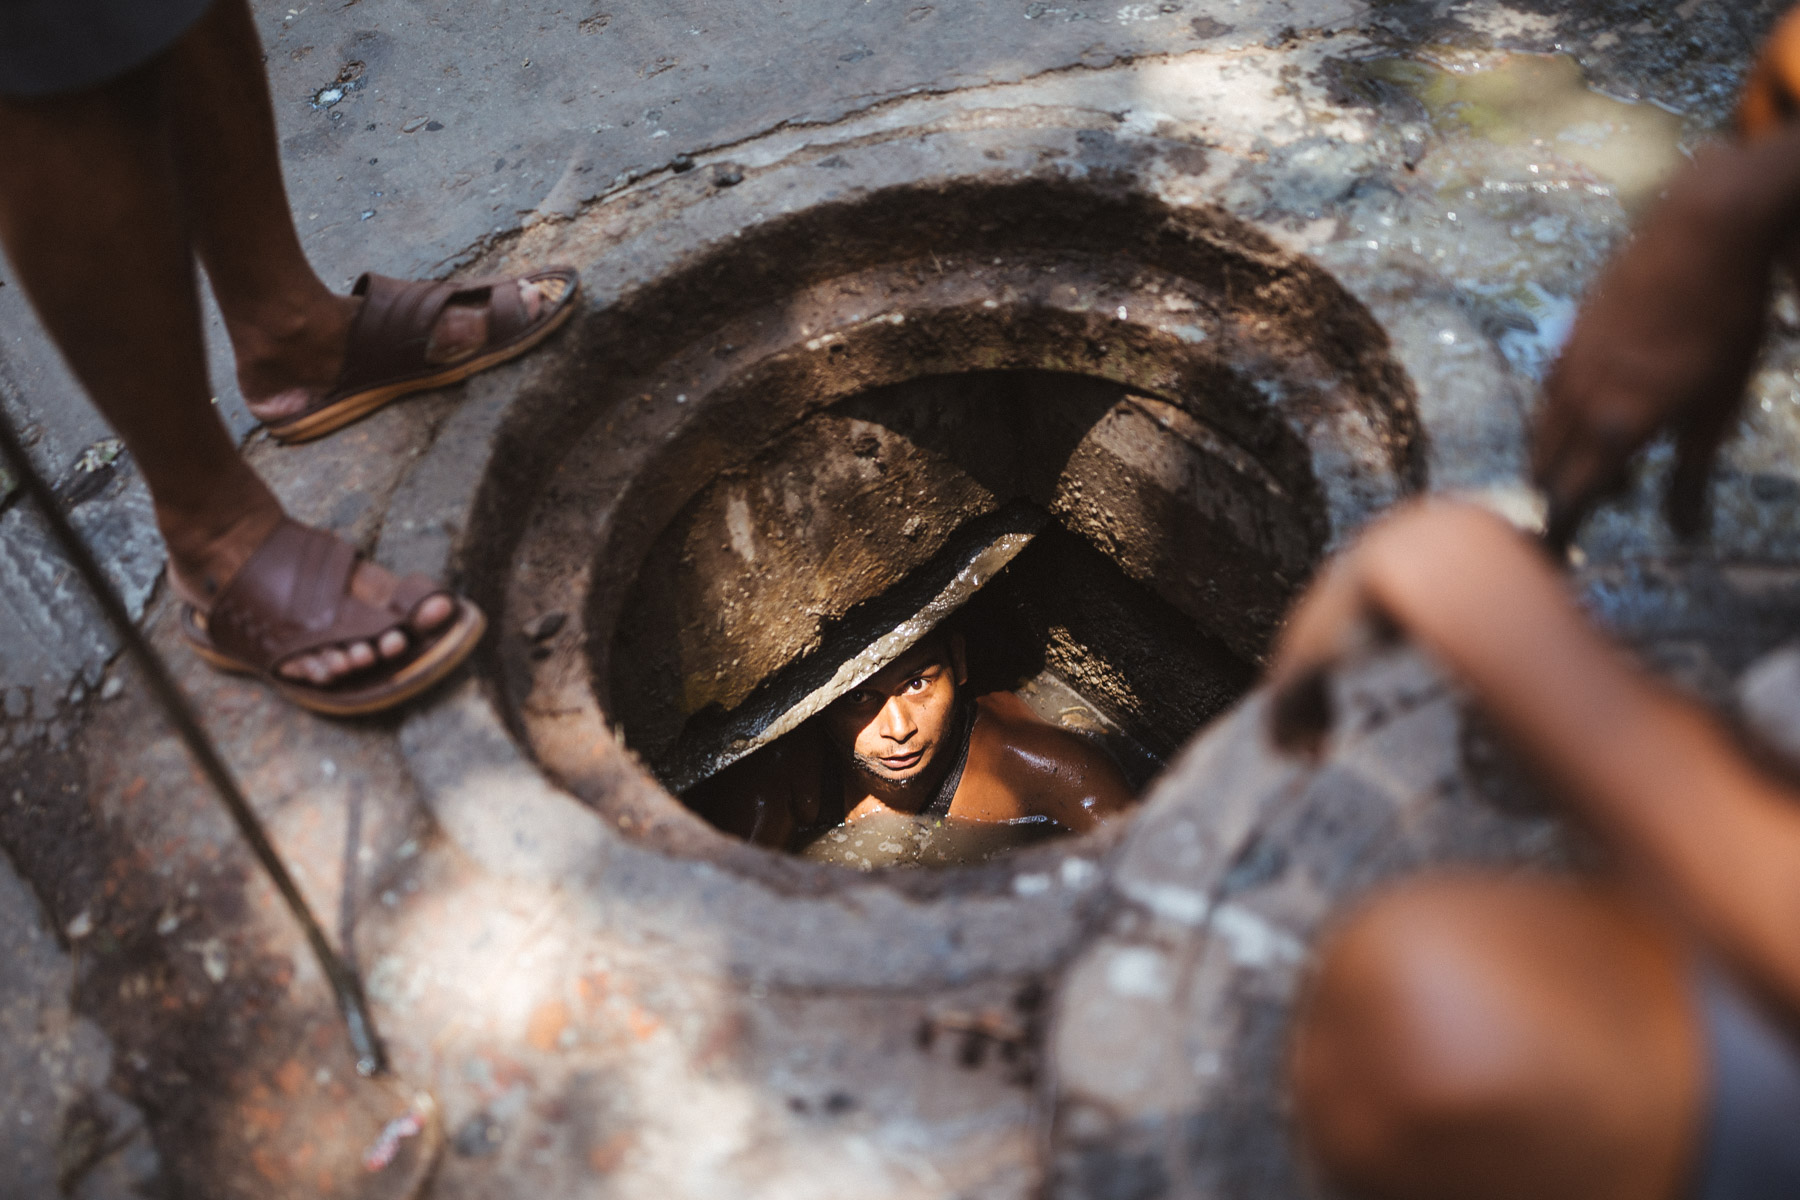 Workers clean out a city sewer in the old town of Kolkata, India.